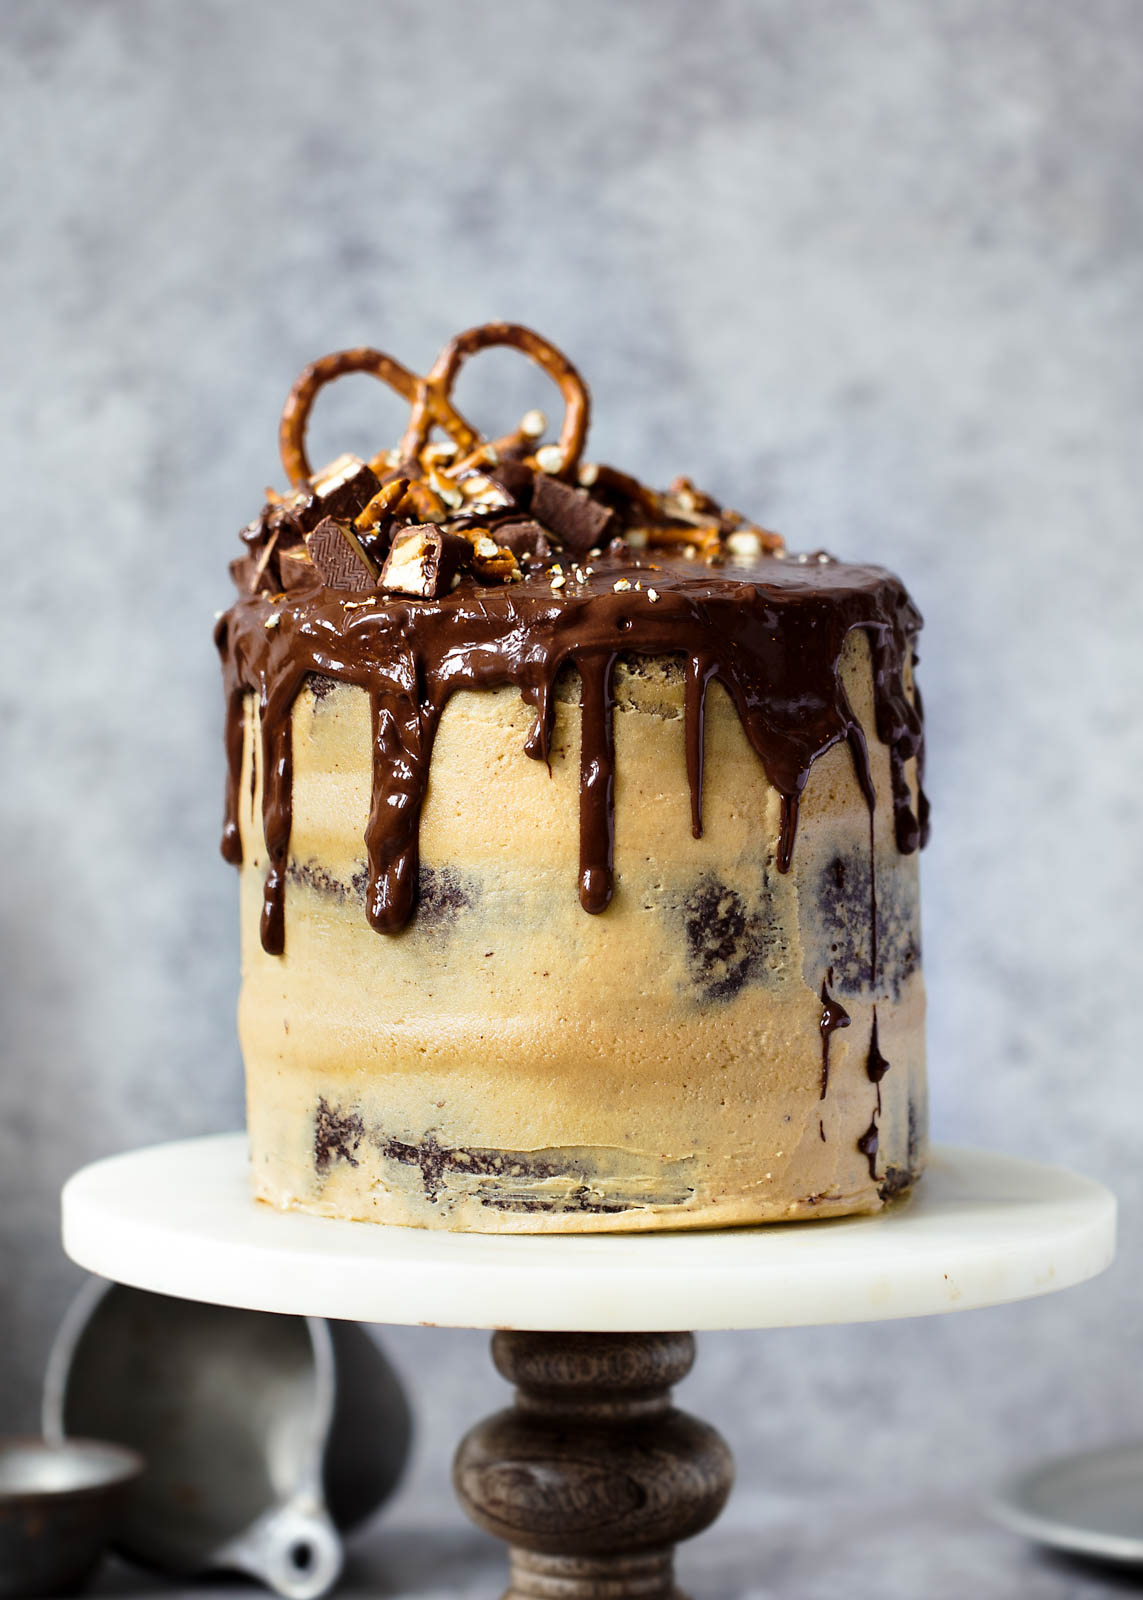 Peanut Butter Chocolate Stout Cake on cake stand